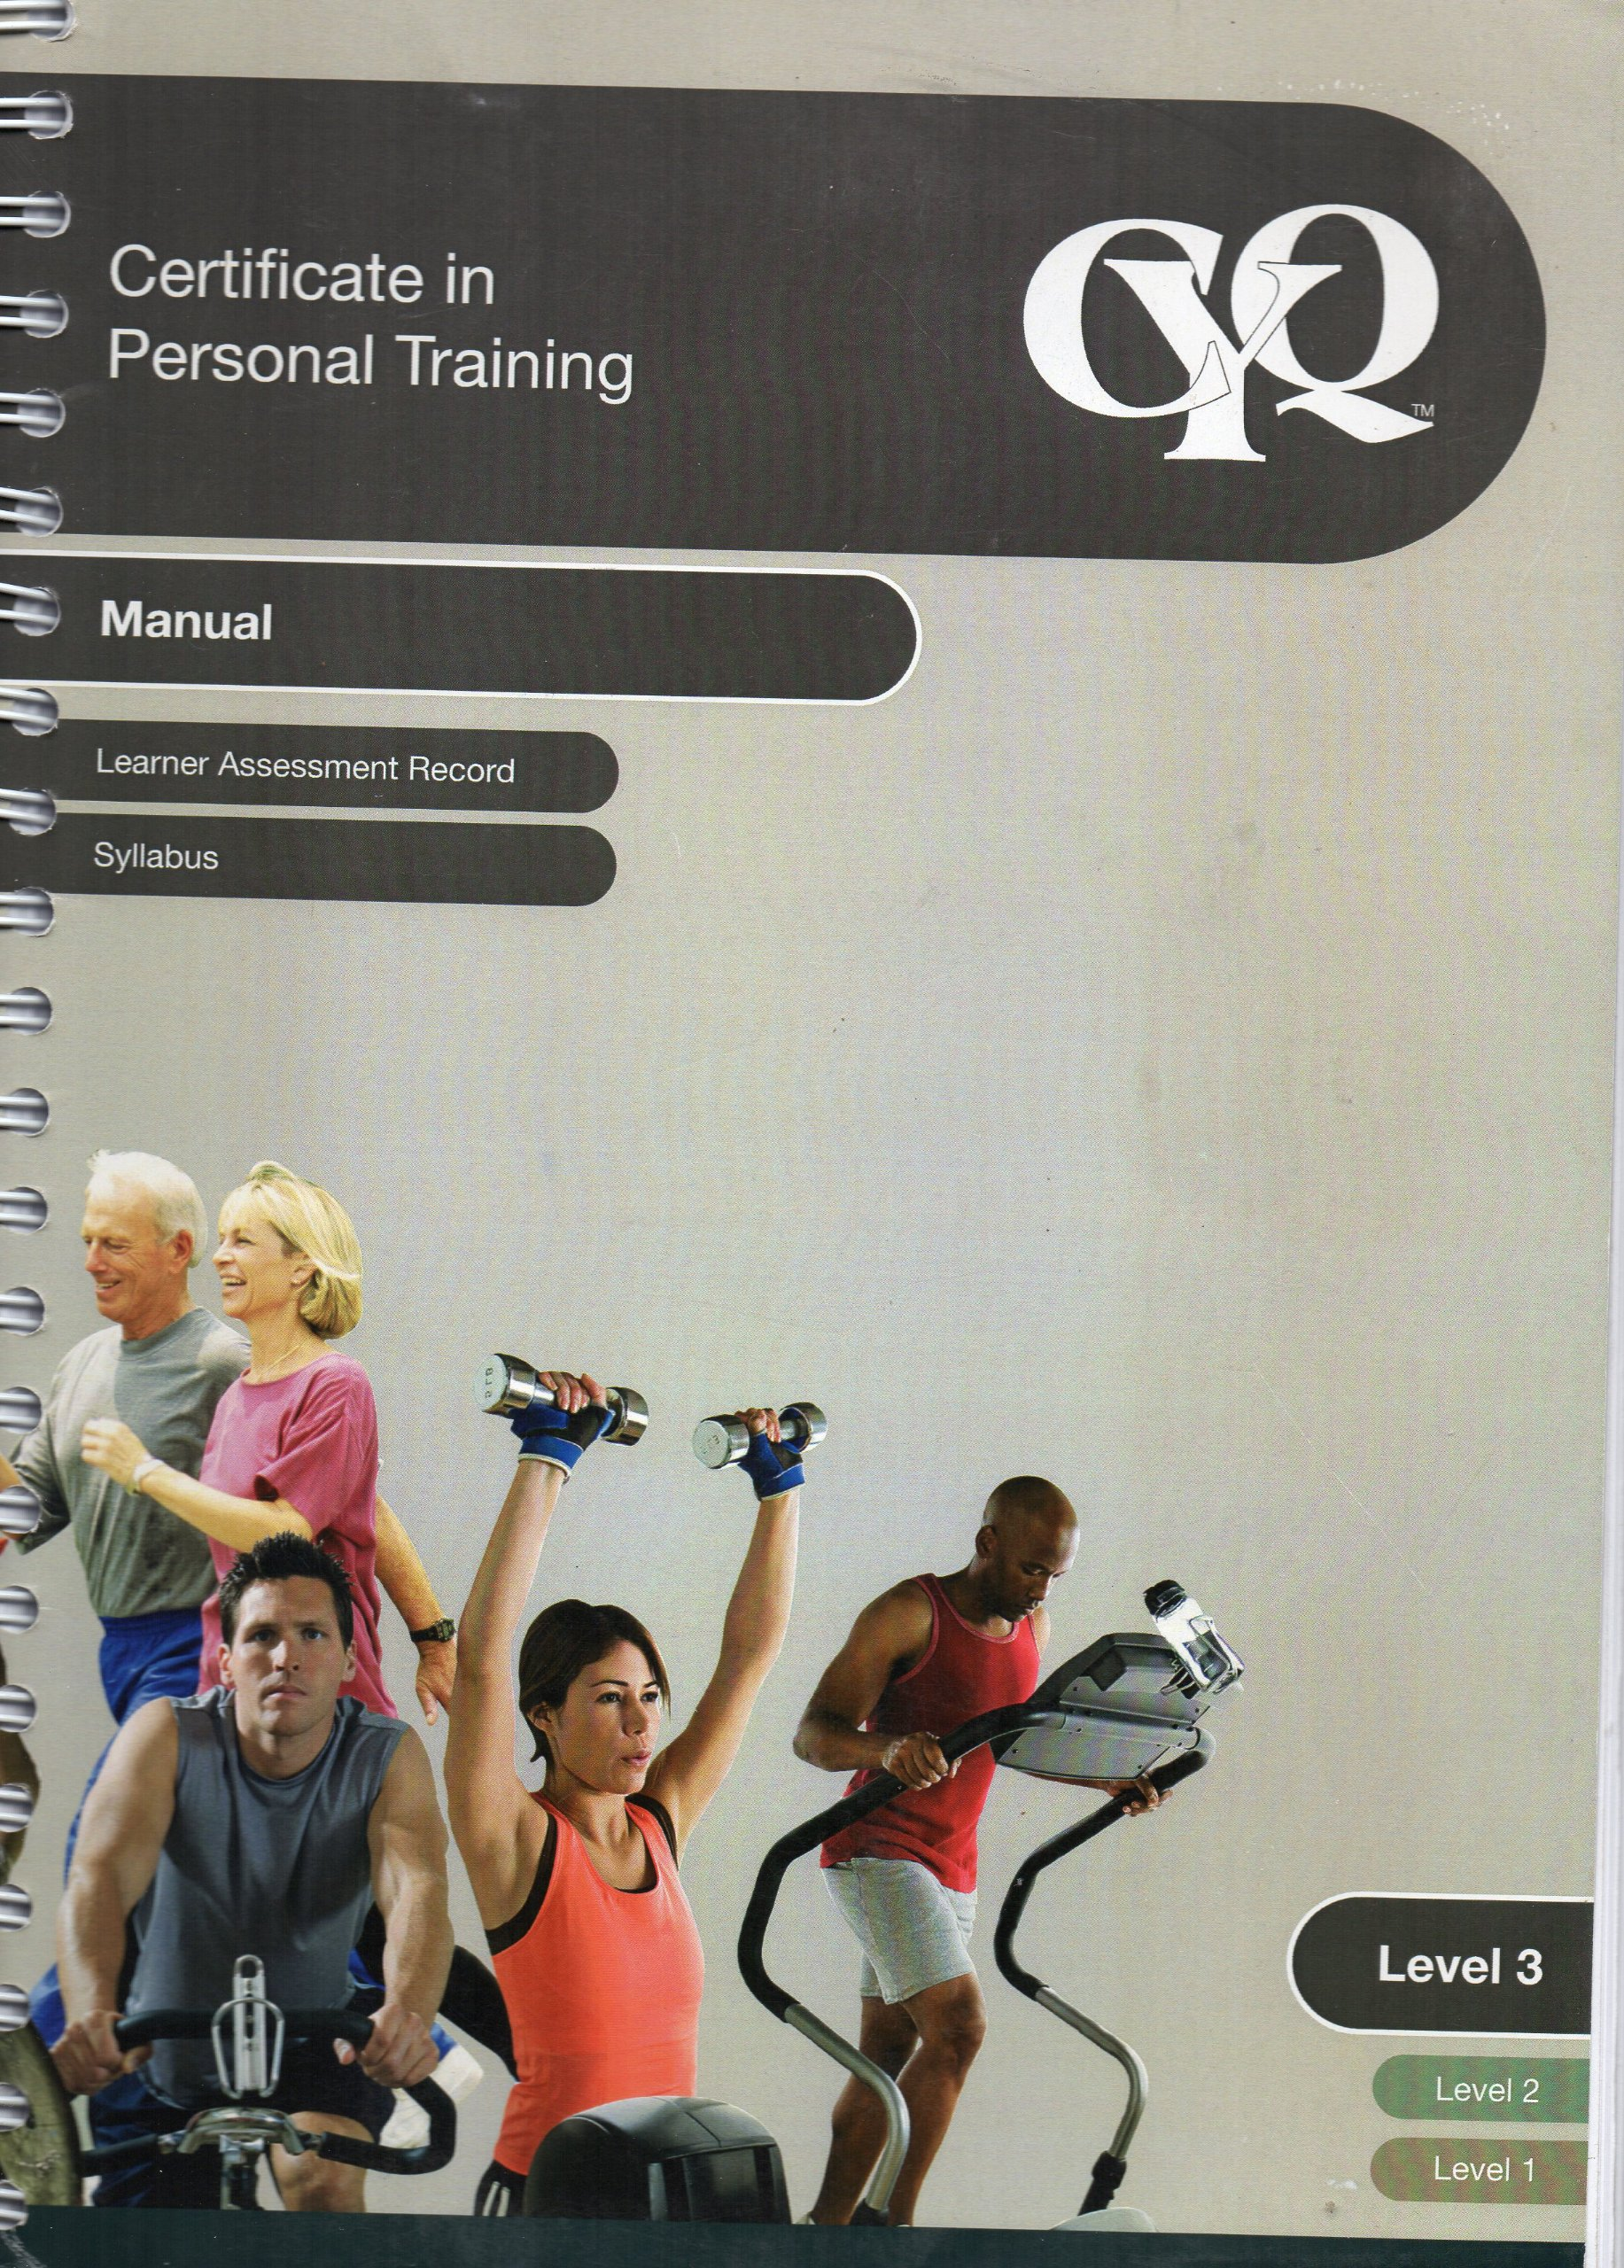 Cyq Certificate In Personal Training Level 3 Manual Learner